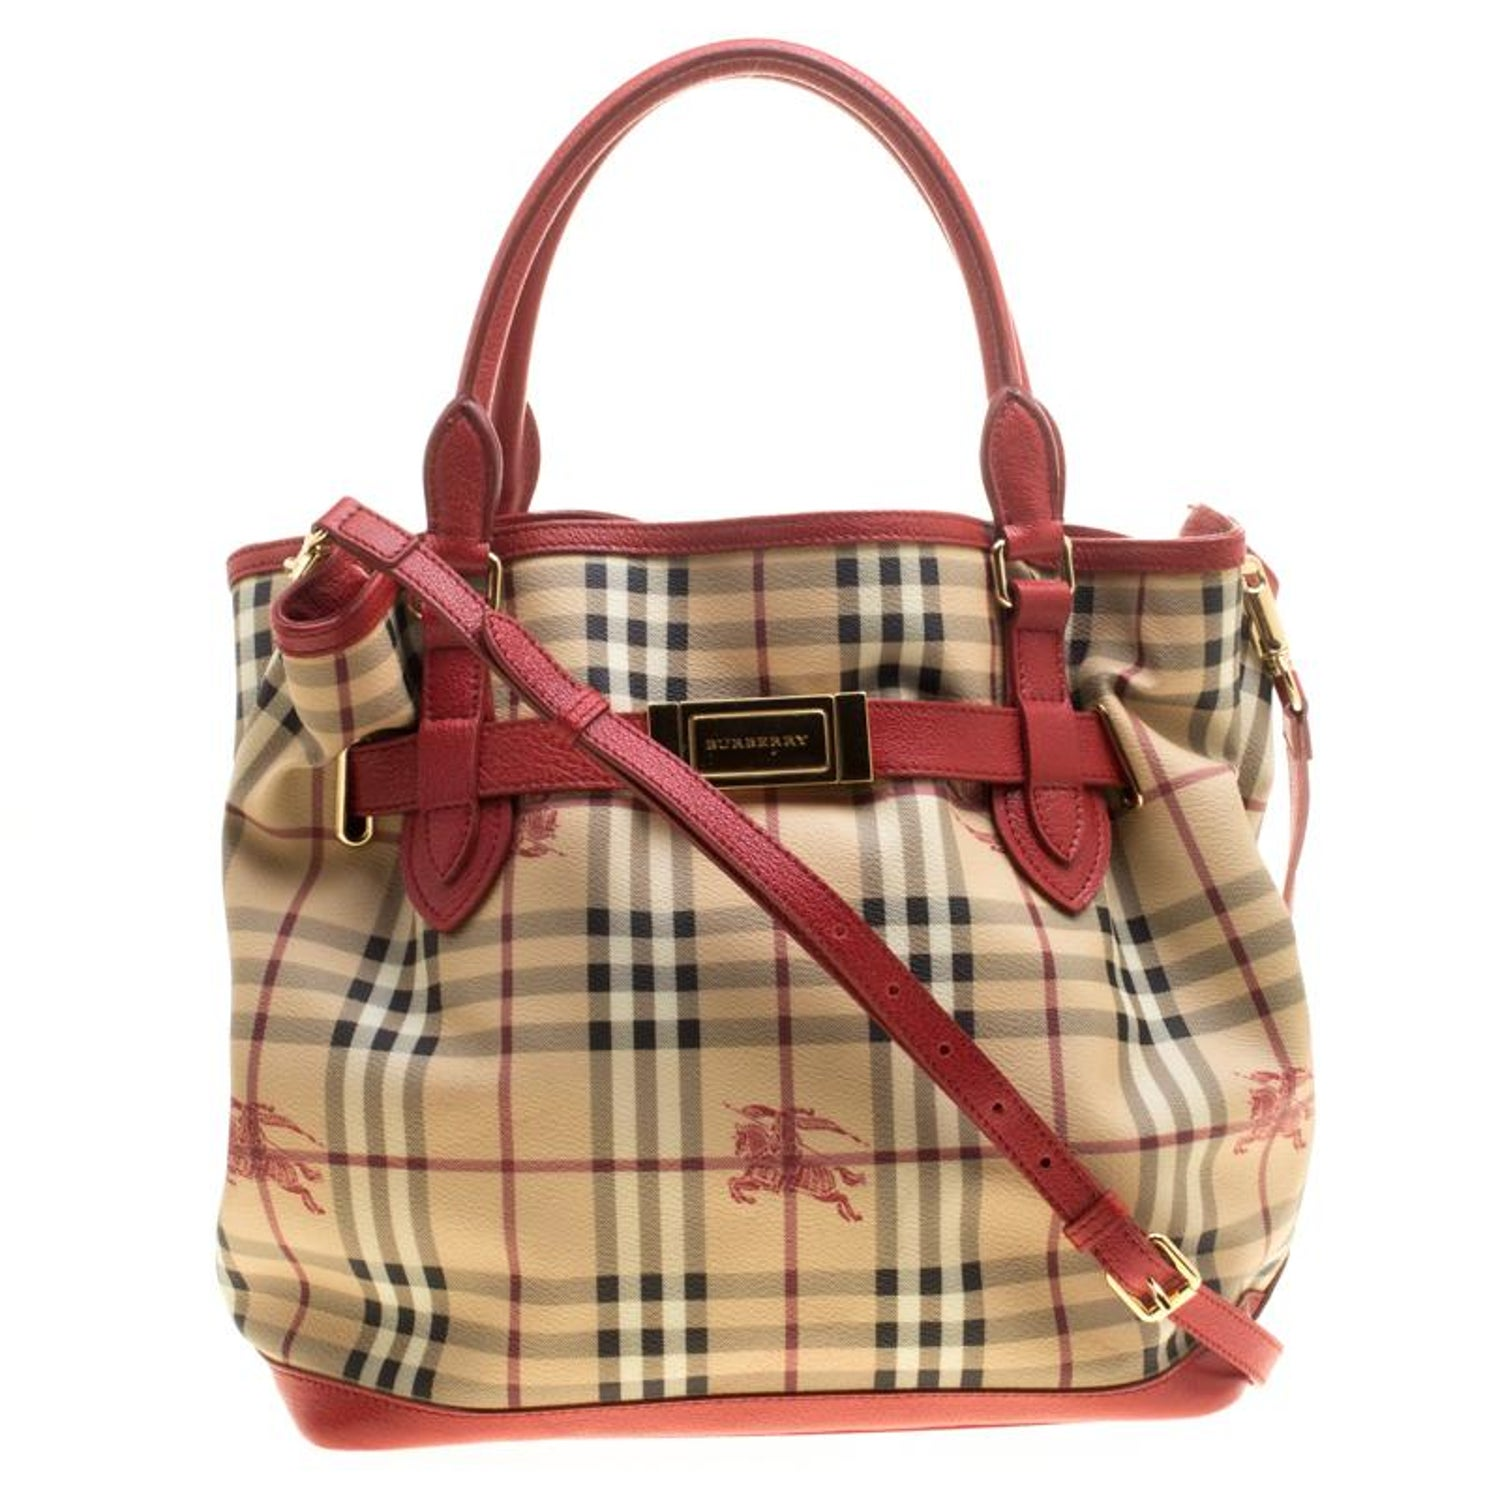 fc1e15baf0c7 Burberry Beige Red Haymarket Check PVC and Leather Medium Golderton Tote  For Sale at 1stdibs